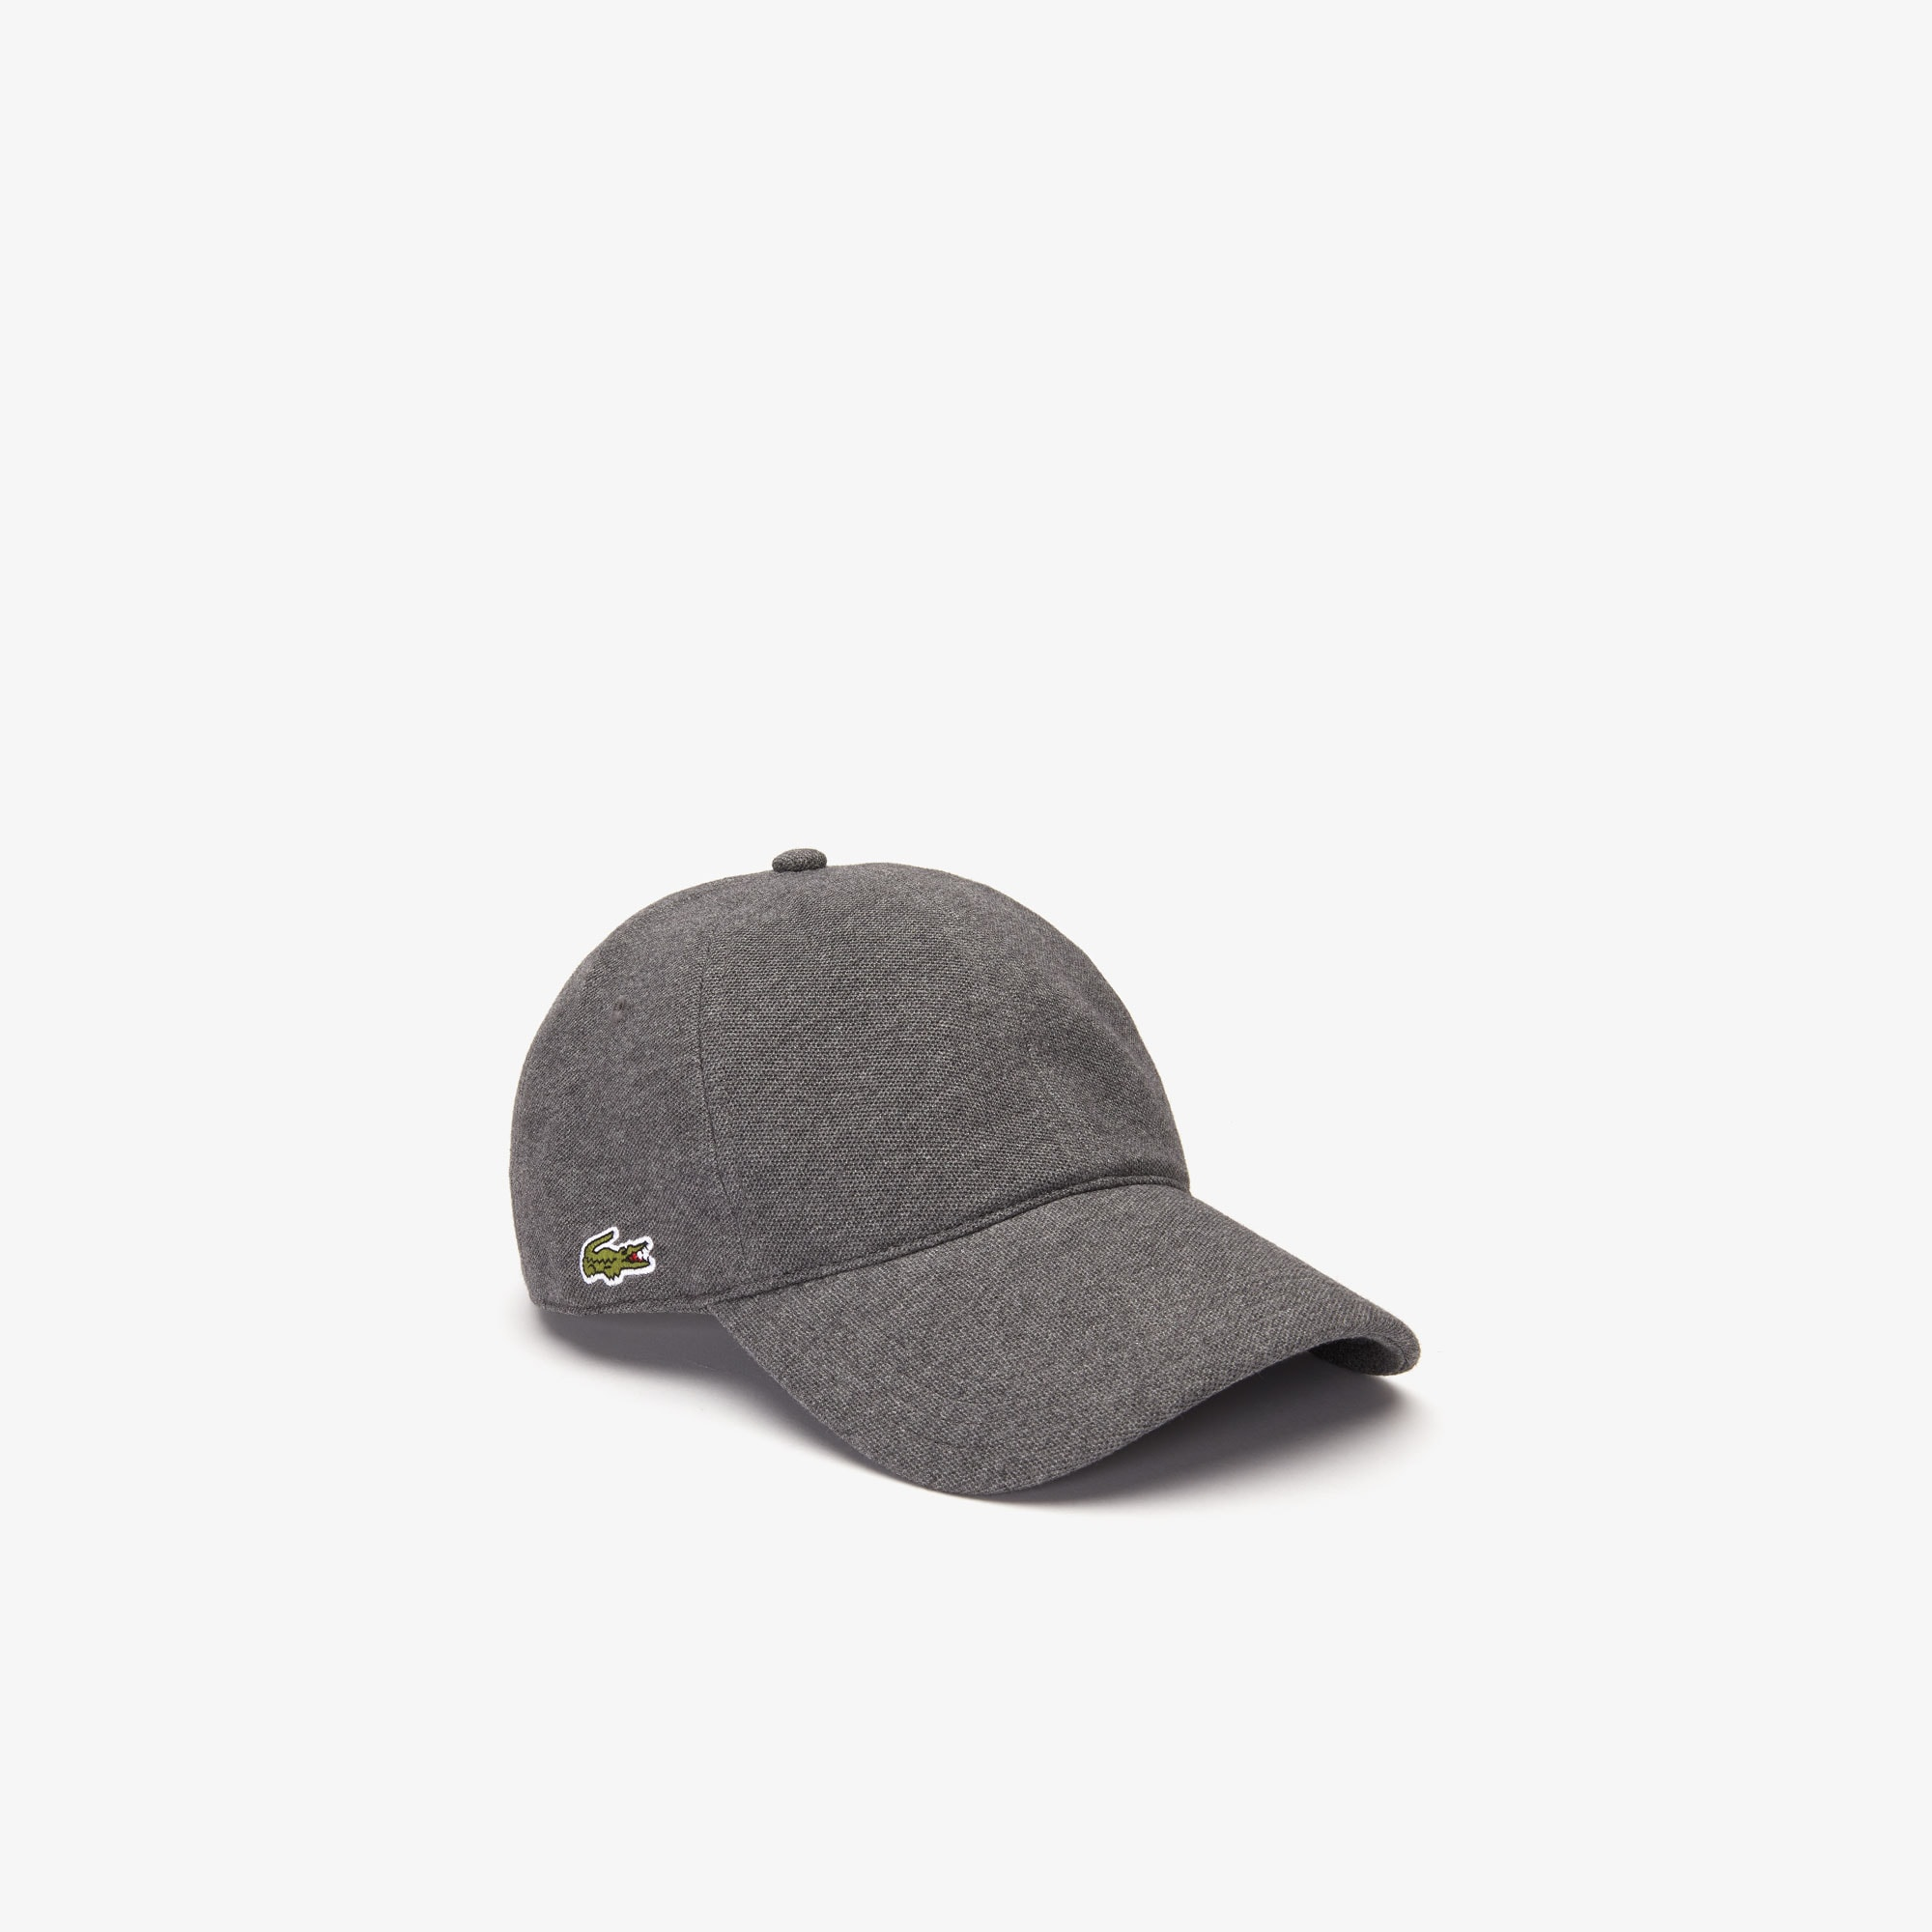 ca9c93c6c Caps & Hats | Men's Accessories | LACOSTE